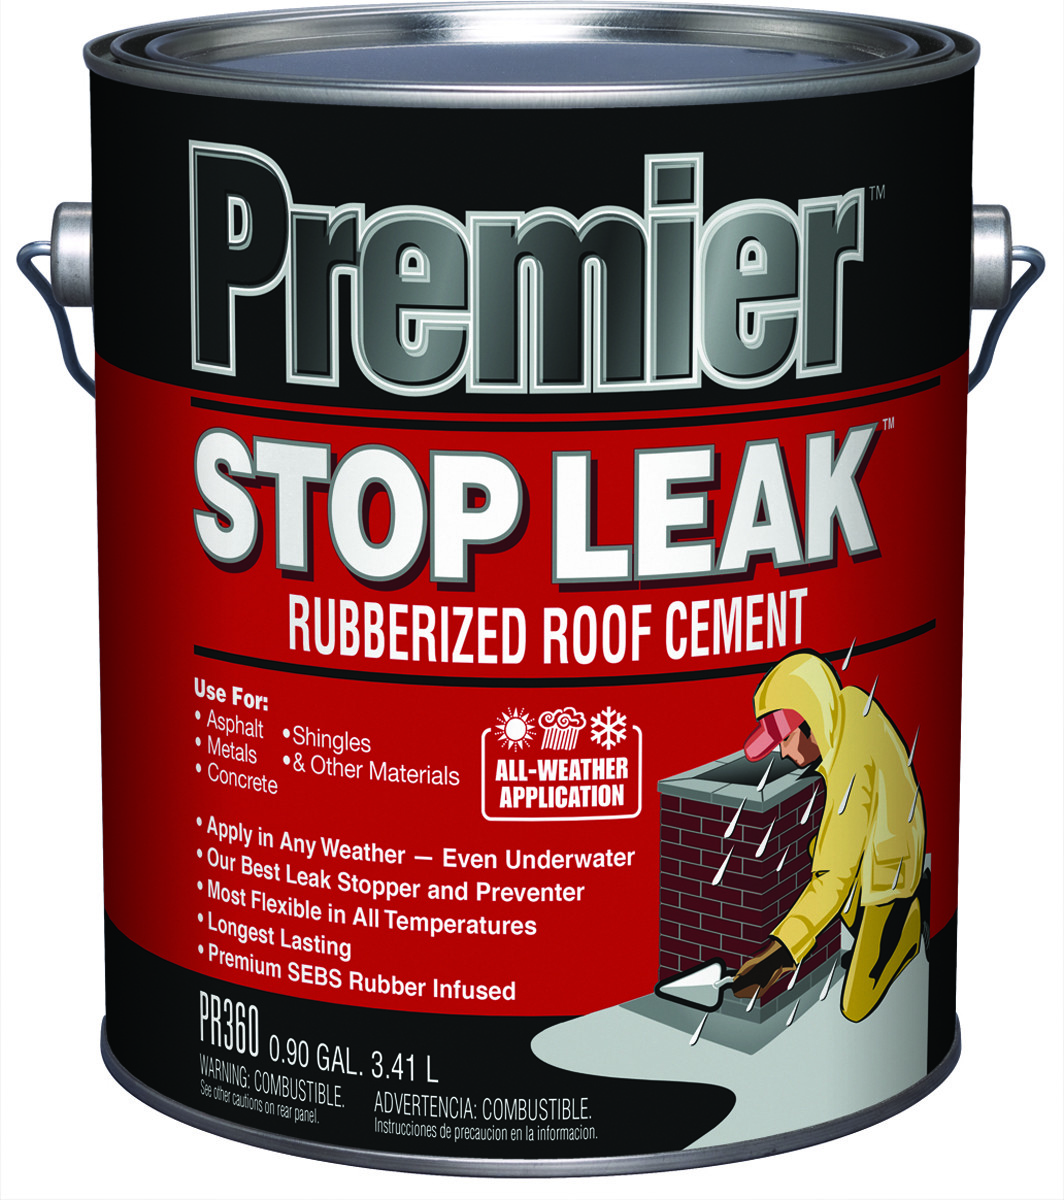 Henry Wet Patch Roof Leak Repair Reviews Latest Rooftop